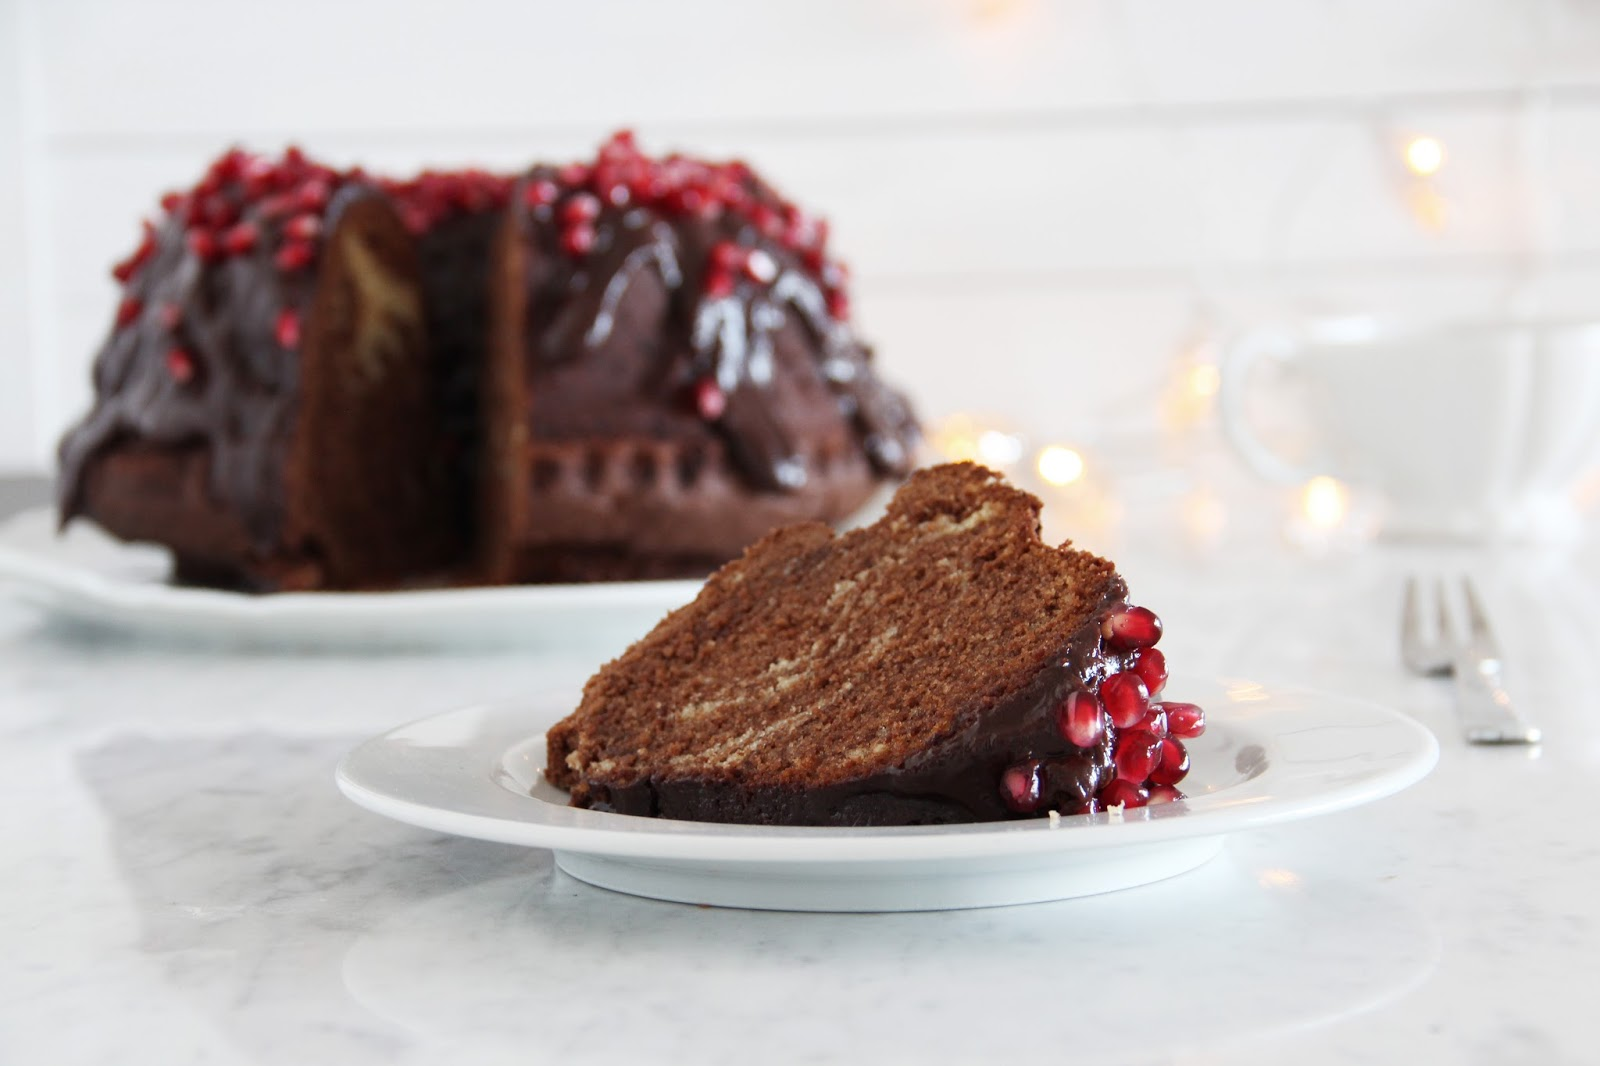 Lindt Chocolate Bundt Cake With Ganache Frosting Pomegranate Fork And Flower